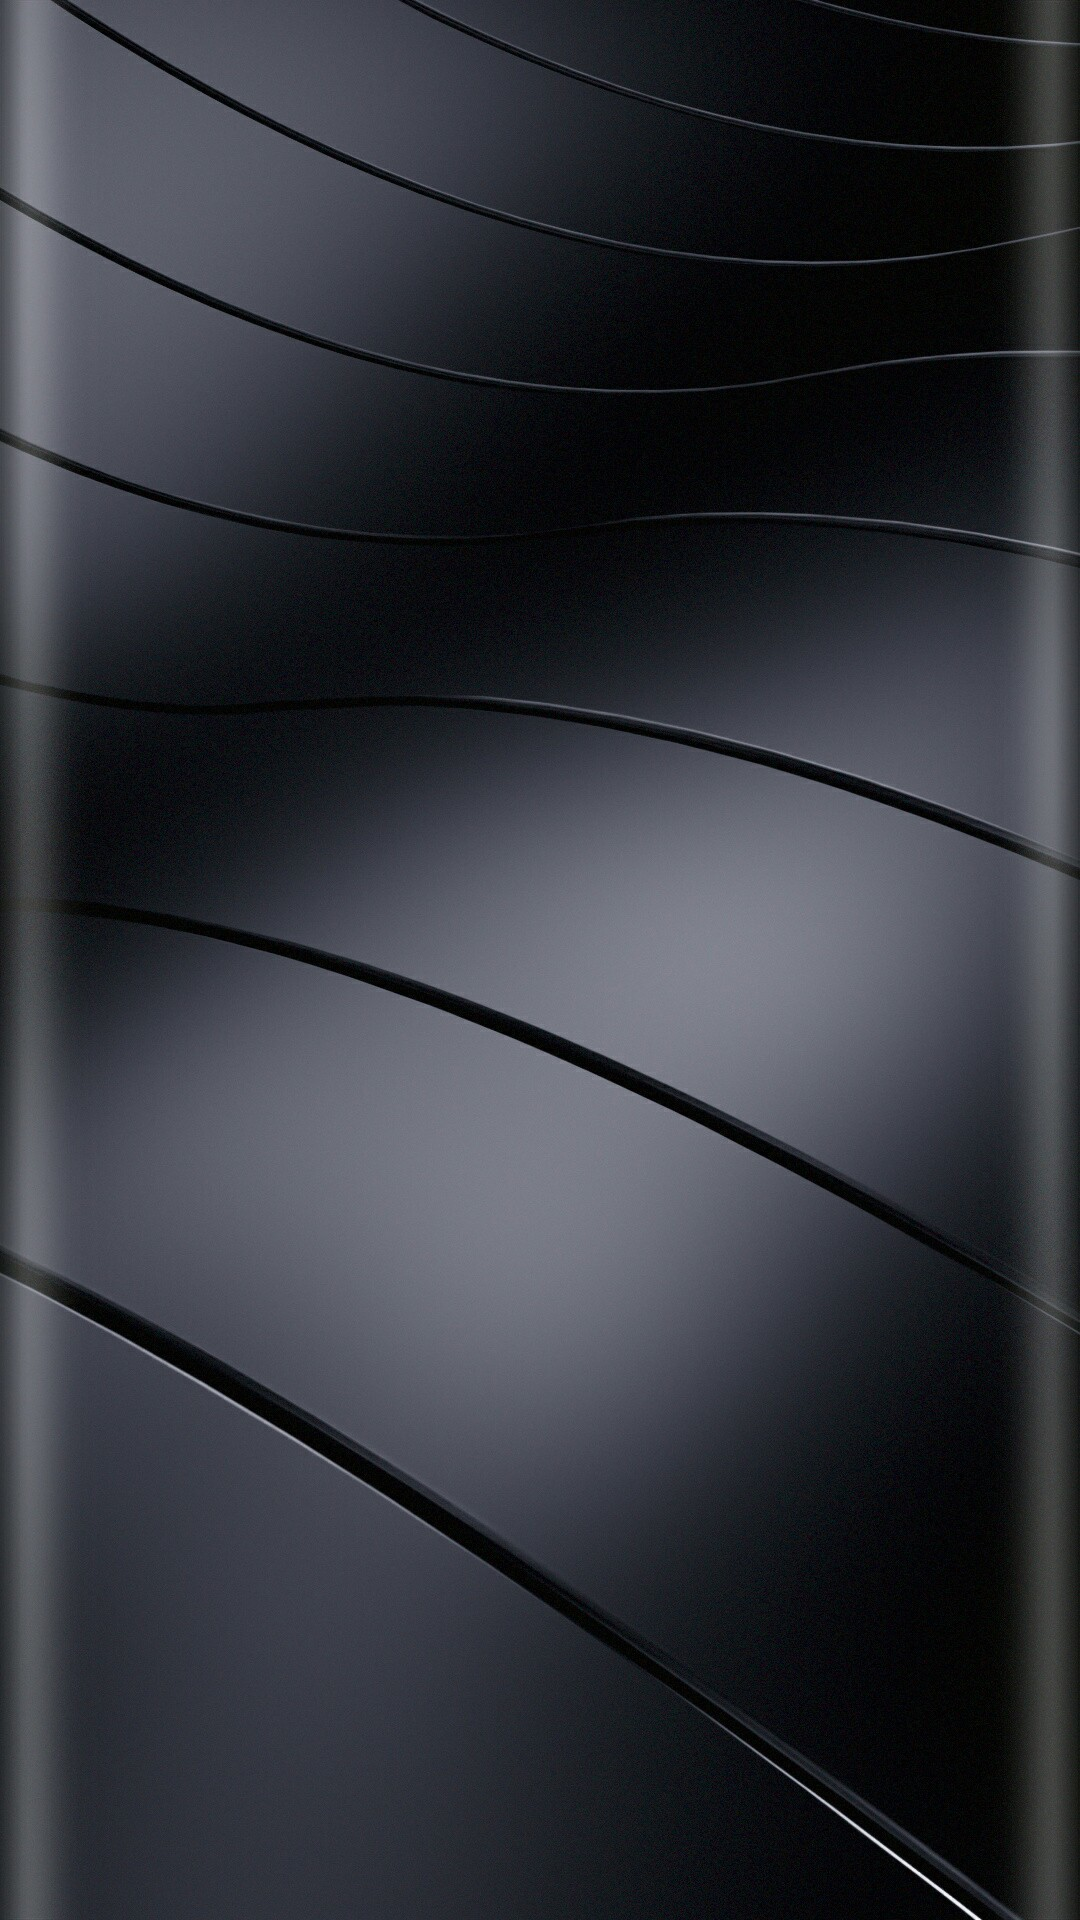 Phone Wallpapers, Curves